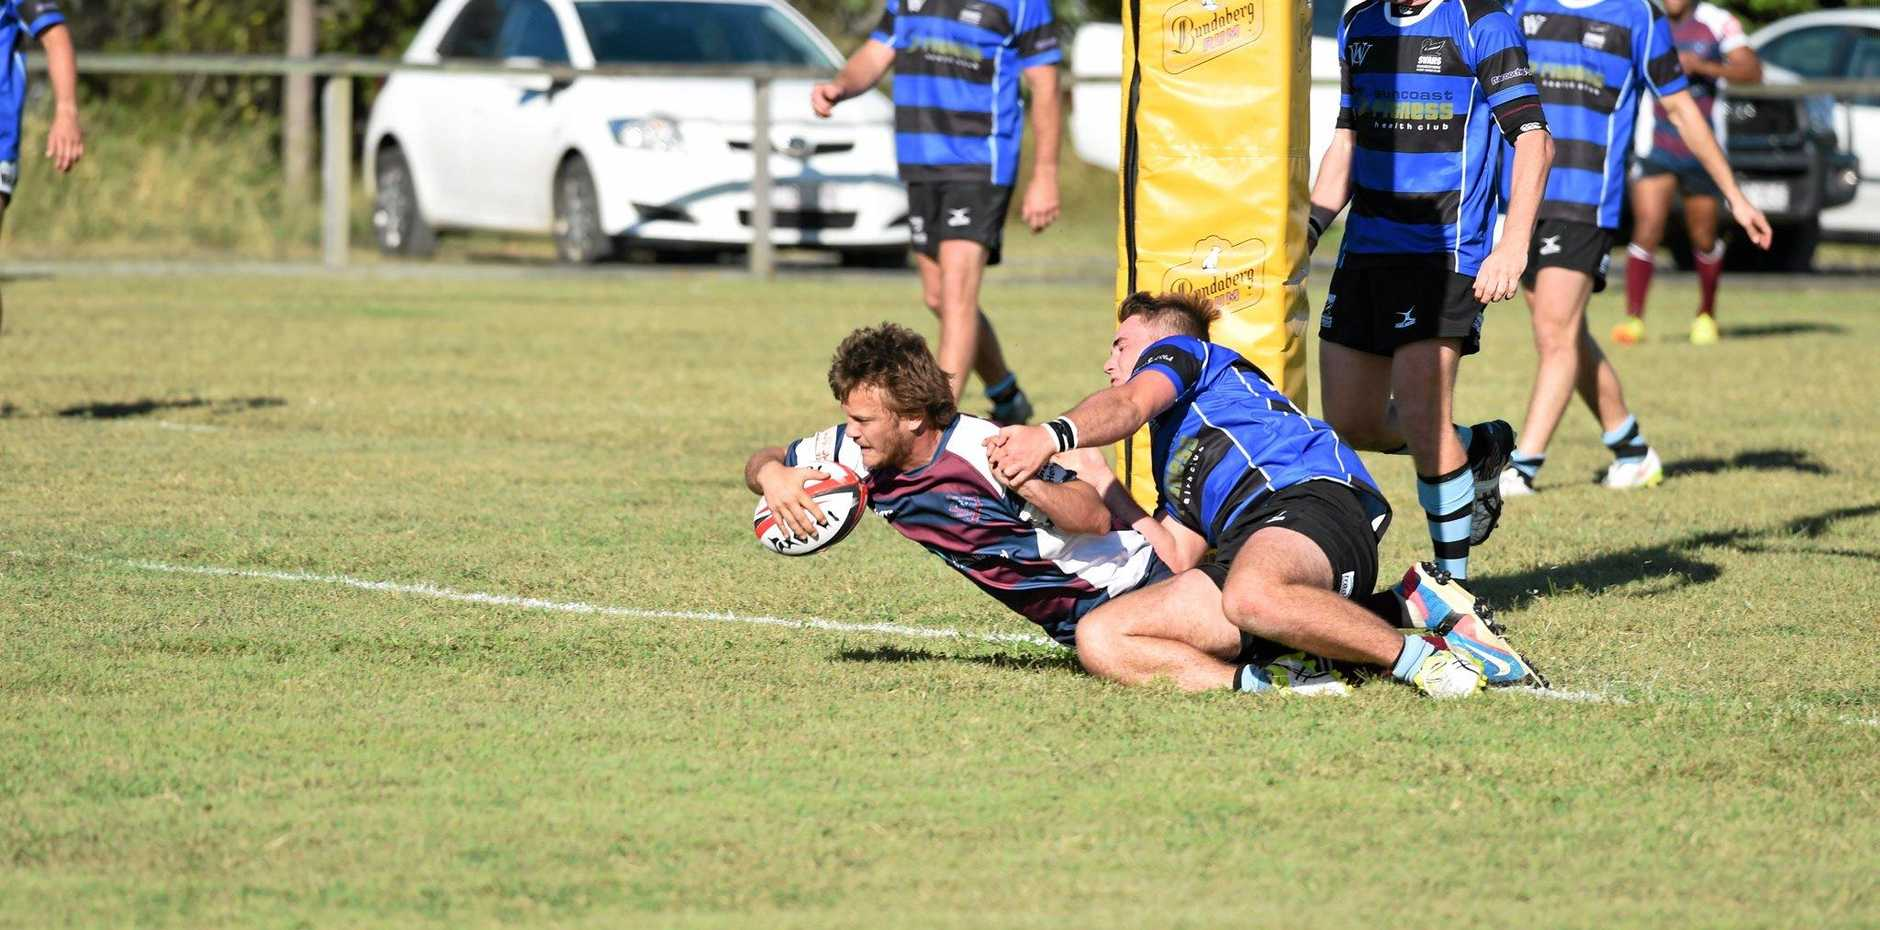 THE MOMENT: Mariners' Cameron Mead scores the match-sealing try in the Fraser Coast Mariners 24-5 win over Maroochydore.